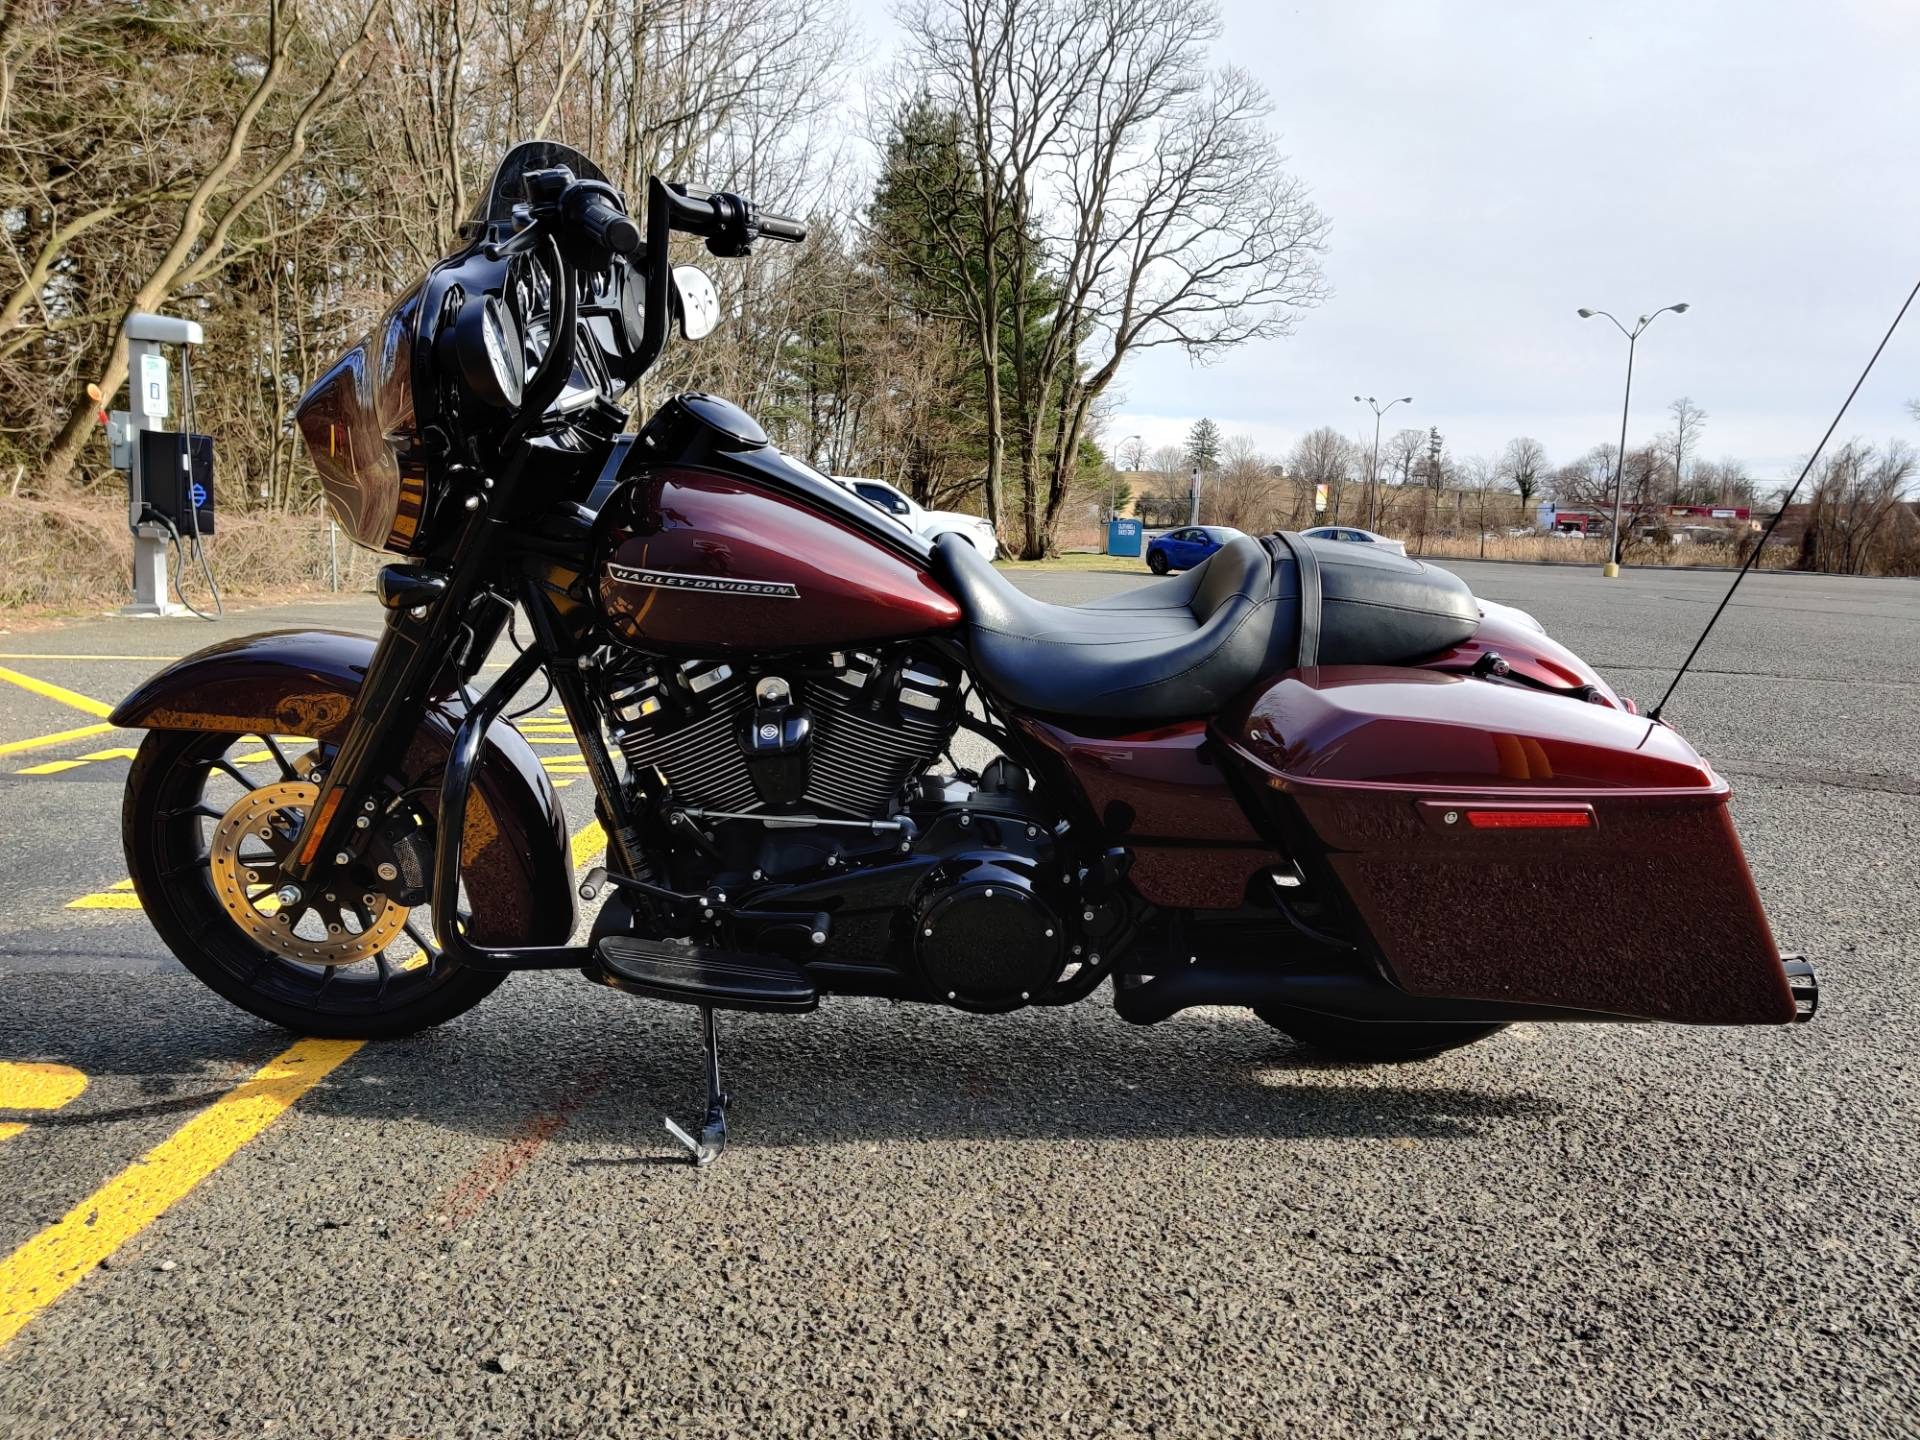 2018 Harley-Davidson Street Glide Special in West Long Branch, New Jersey - Photo 2